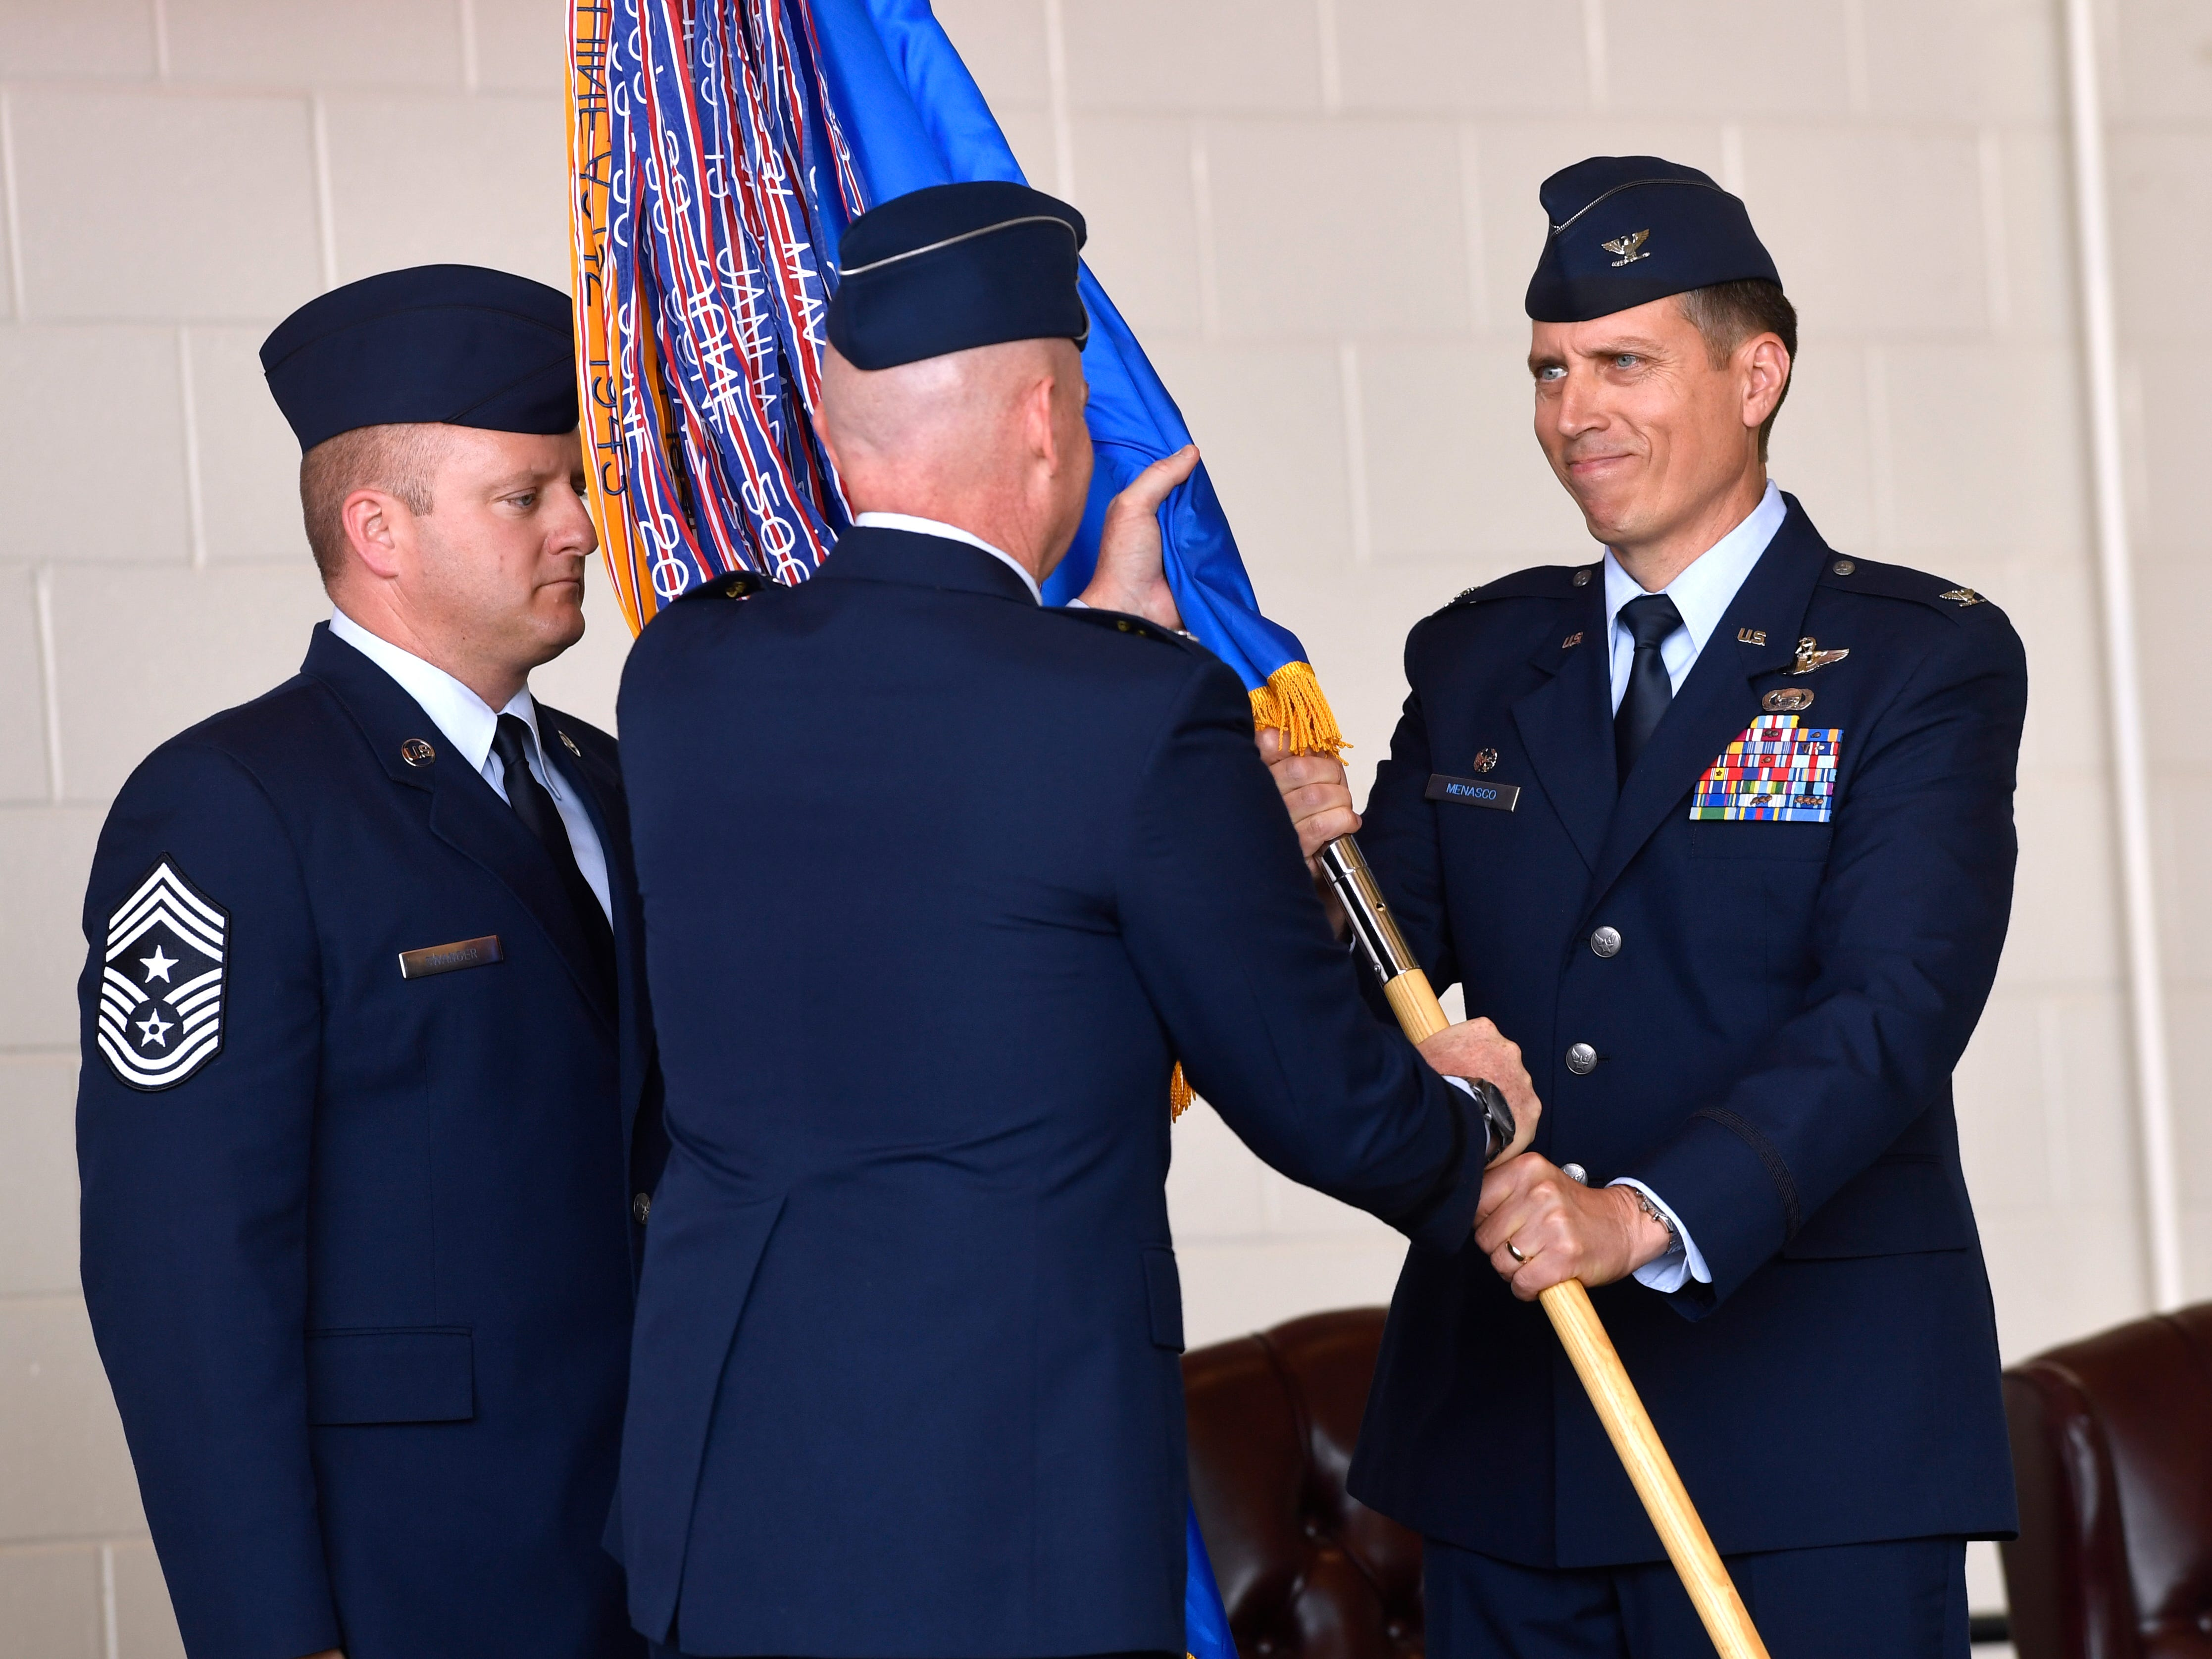 Col. Jeffrey Menasco is given command of the 317th Airlift Wing by Major Gen. Sam Barrett, Commander of the 18th Air Force, during an assumption of command ceremony Friday August 3, 2018 at Dyess Air Force Base. The passing of the guidon symbolizes the awarding of responsibility, and Mensasco handed the banners back to Command Chief Msgt. Joshua Swanger for keeping upon accepting command.